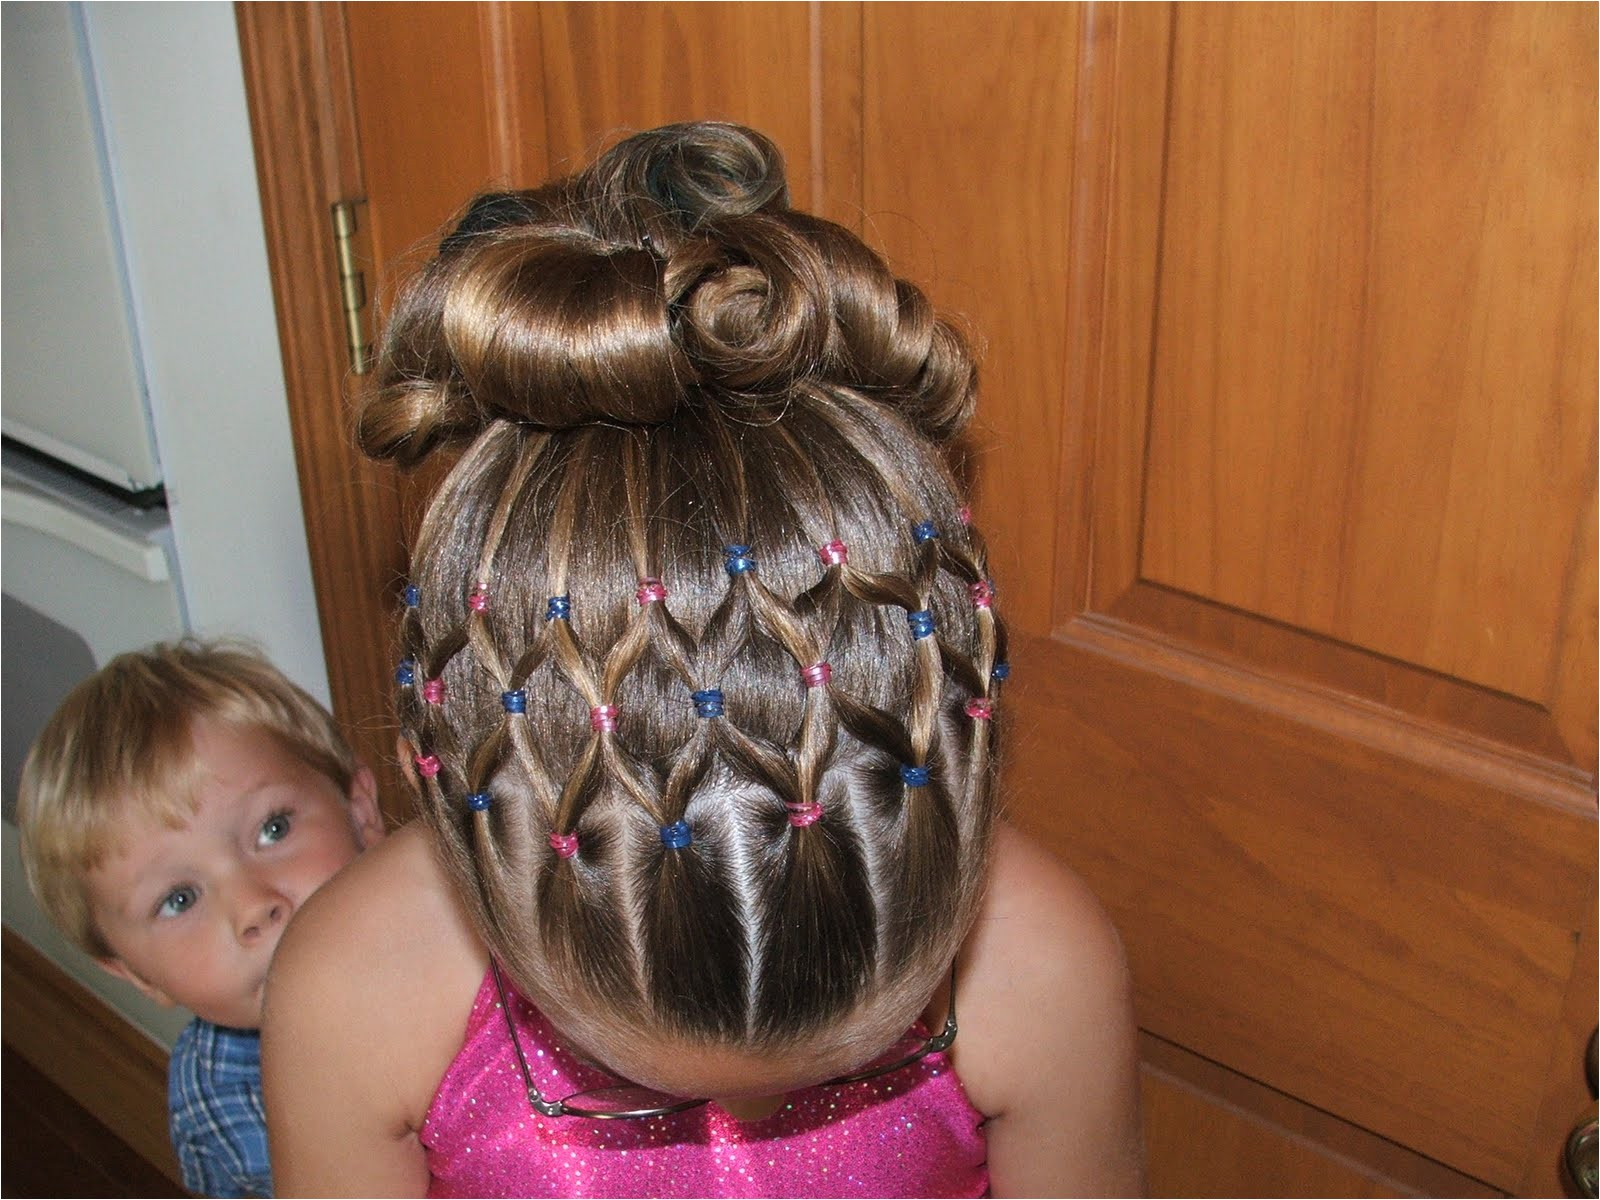 Cool Hairstyles for 10 Year Old Girls 15 Elegant 7 Year Old Girl Hairstyles Image